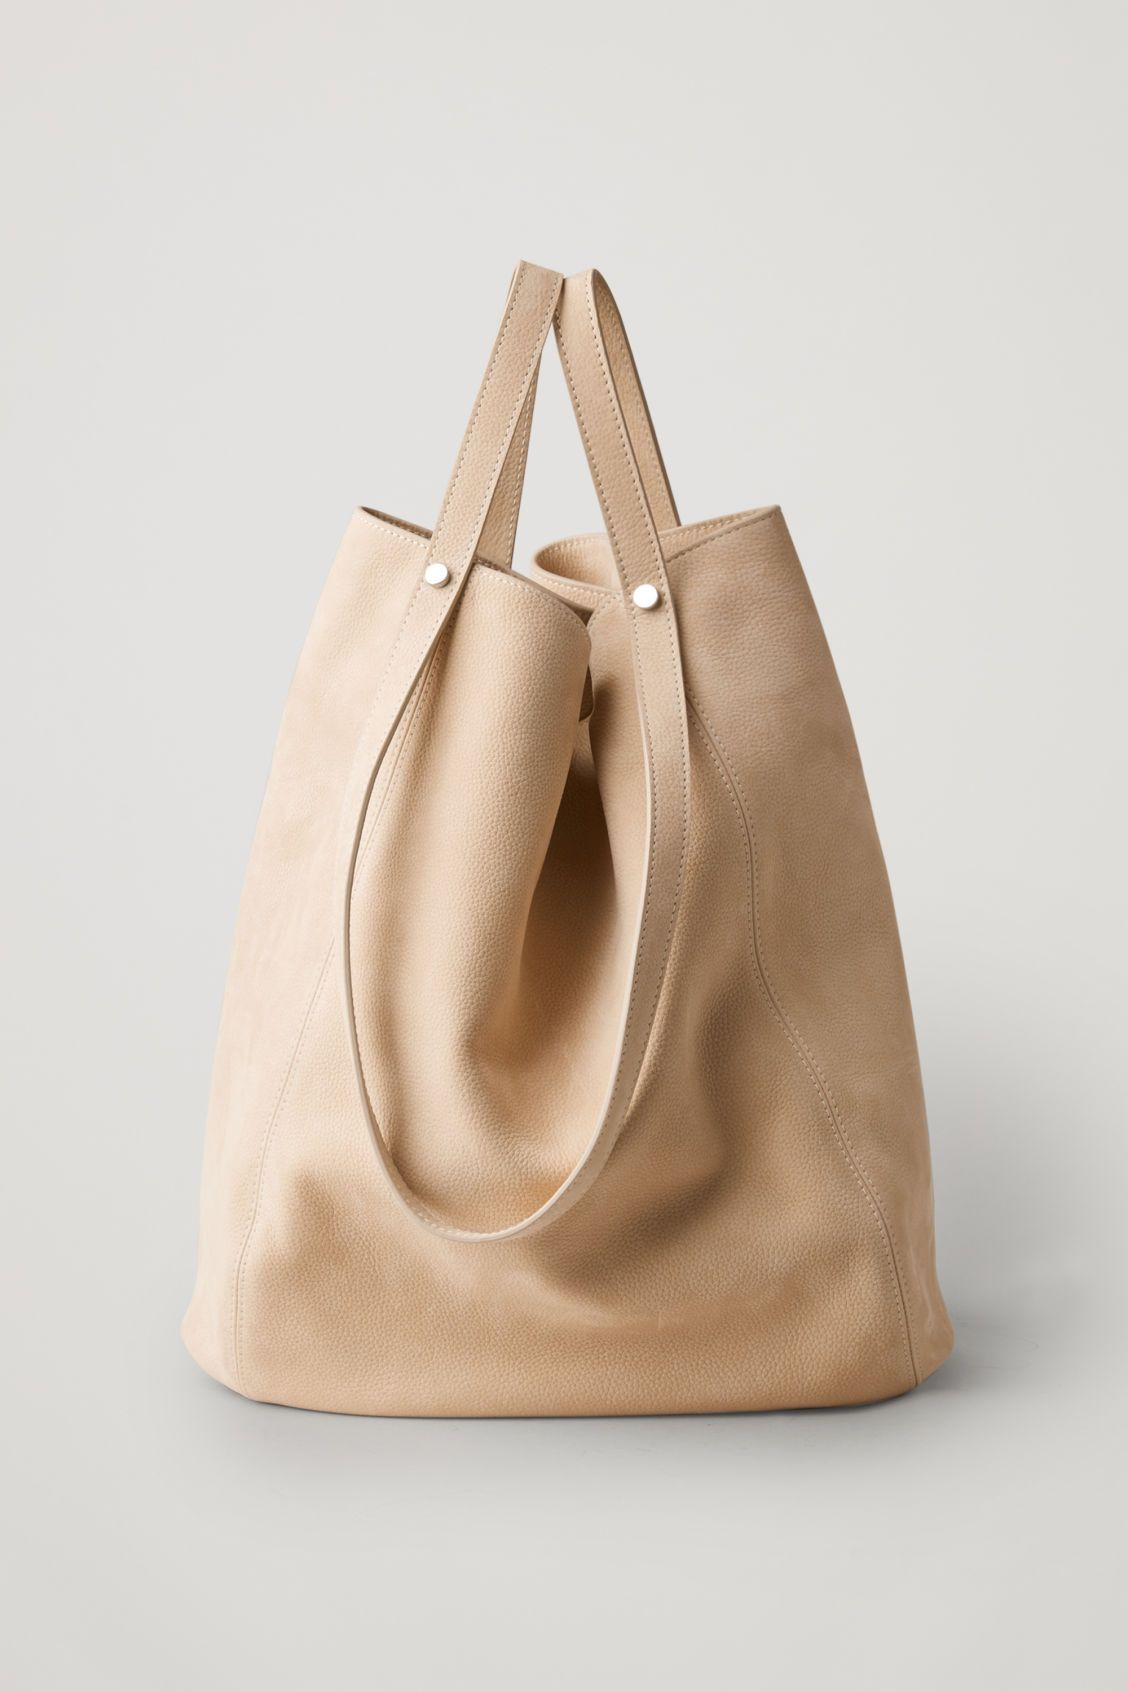 6bef50d8762 VERSATILE LEATHER SHOPPER - Beige - Bags - COS | COS Spring Wishlist ...